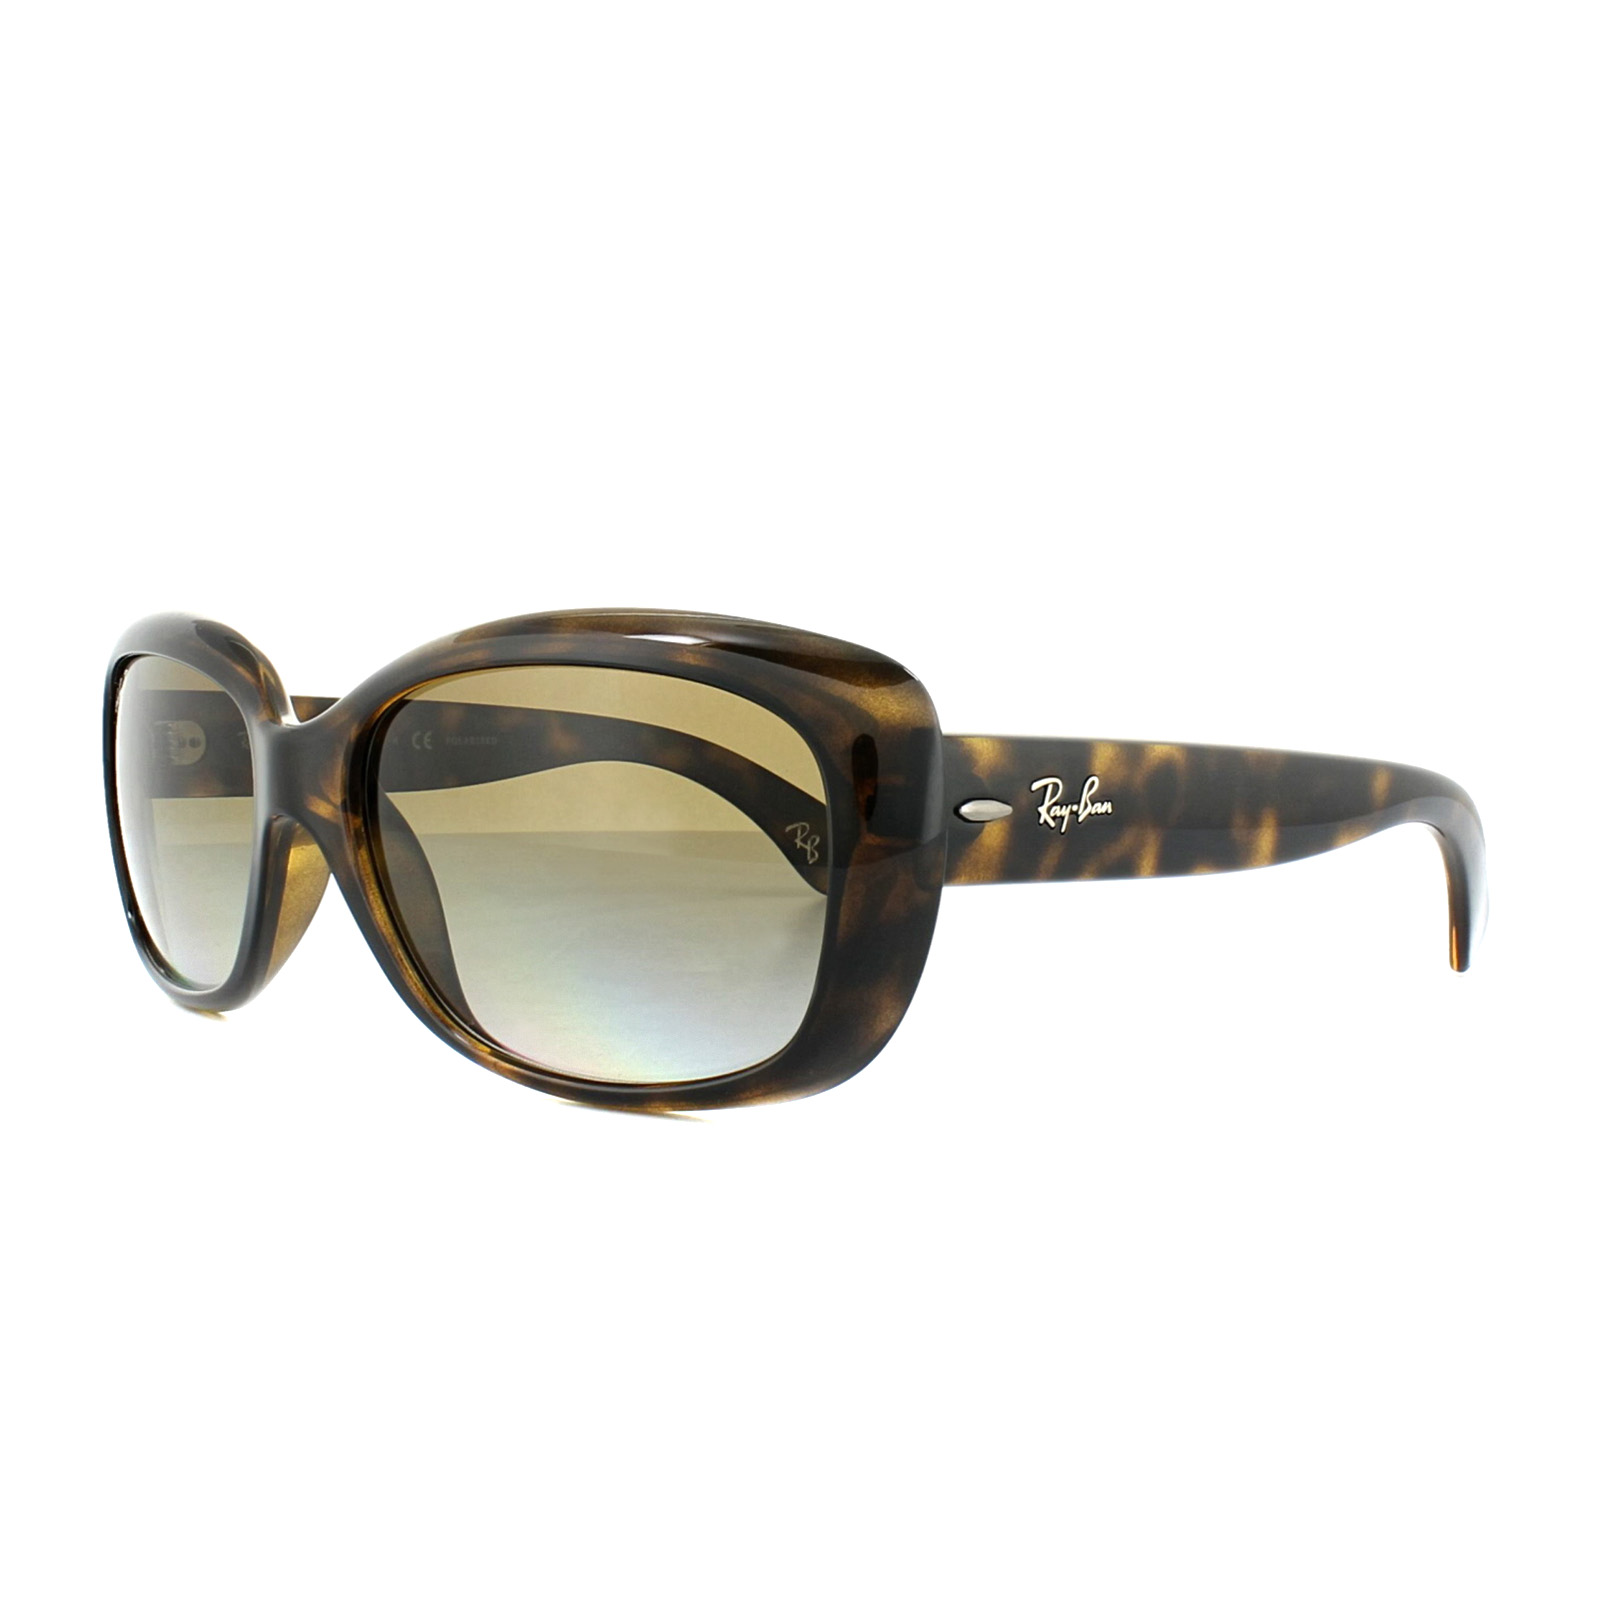 196f434c20e Sentinel Ray-Ban Sunglasses Jackie Ohh 4101 710 T5 Tortoise Brown Gradient  Polarized